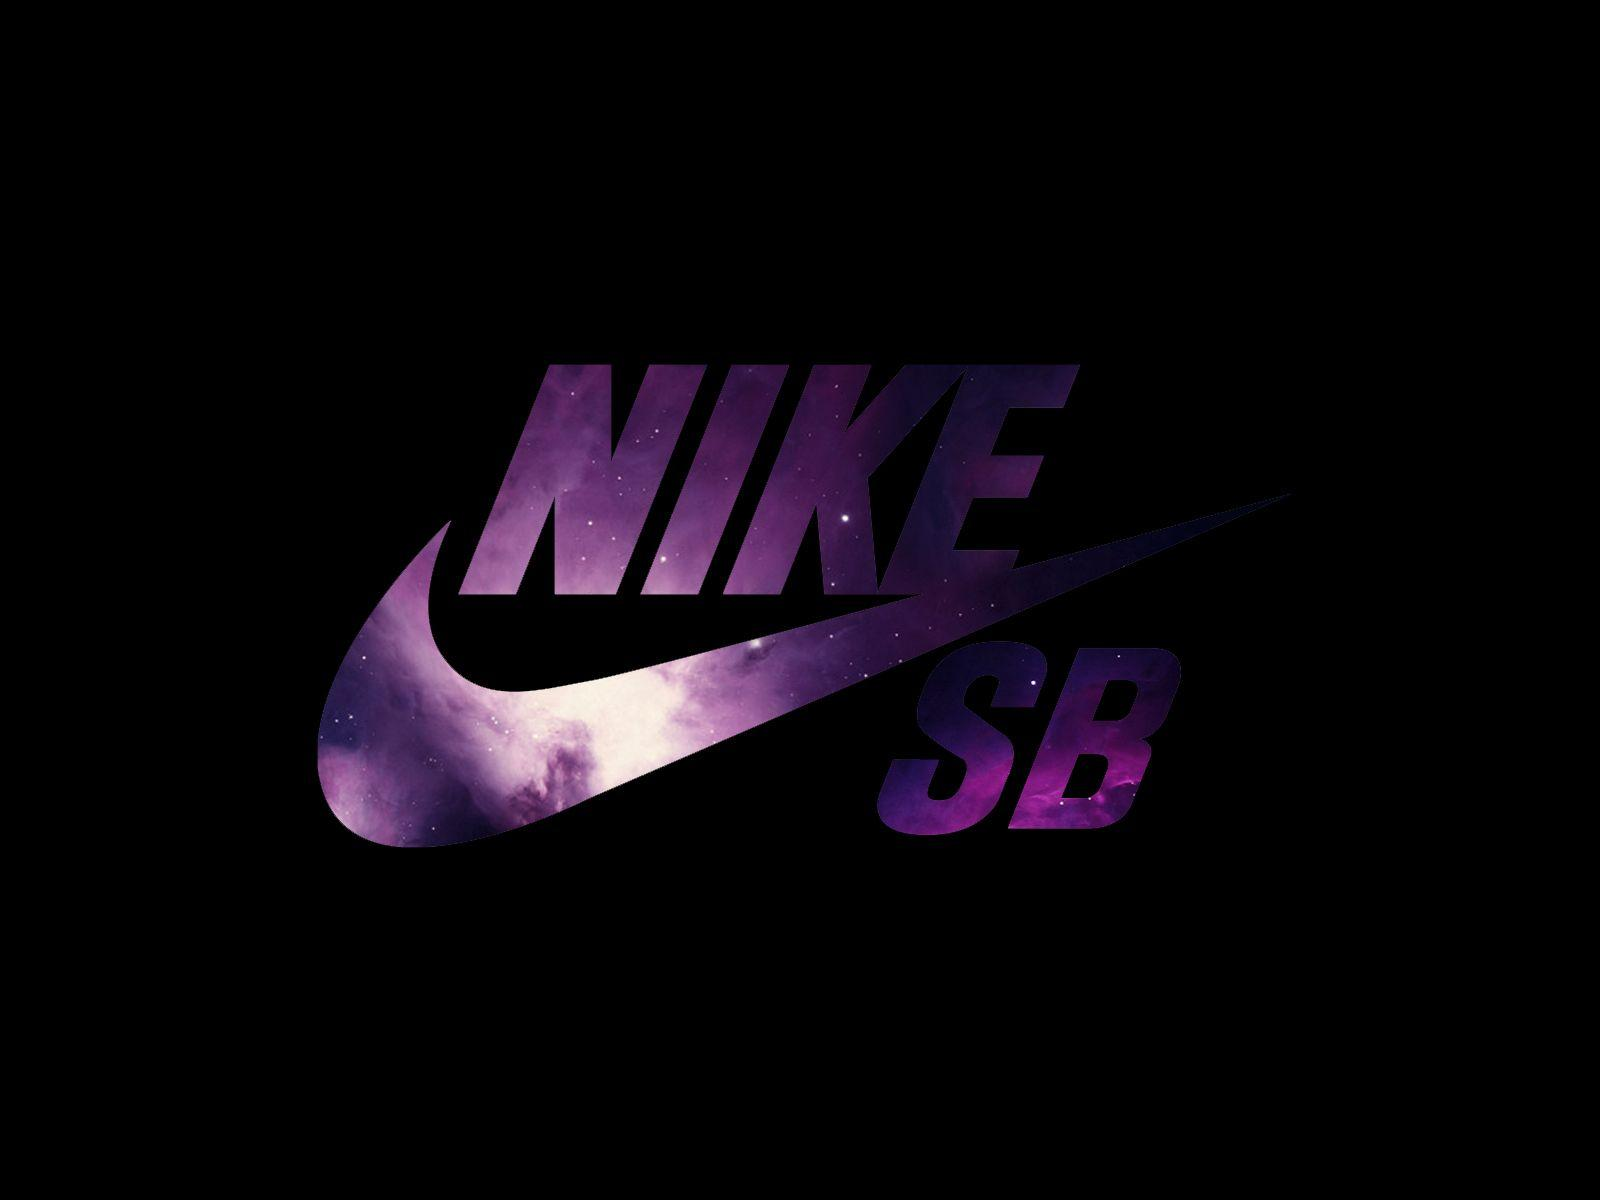 Fantastic Wallpaper Logo Nike - wc1707756  Collection_291882.jpg